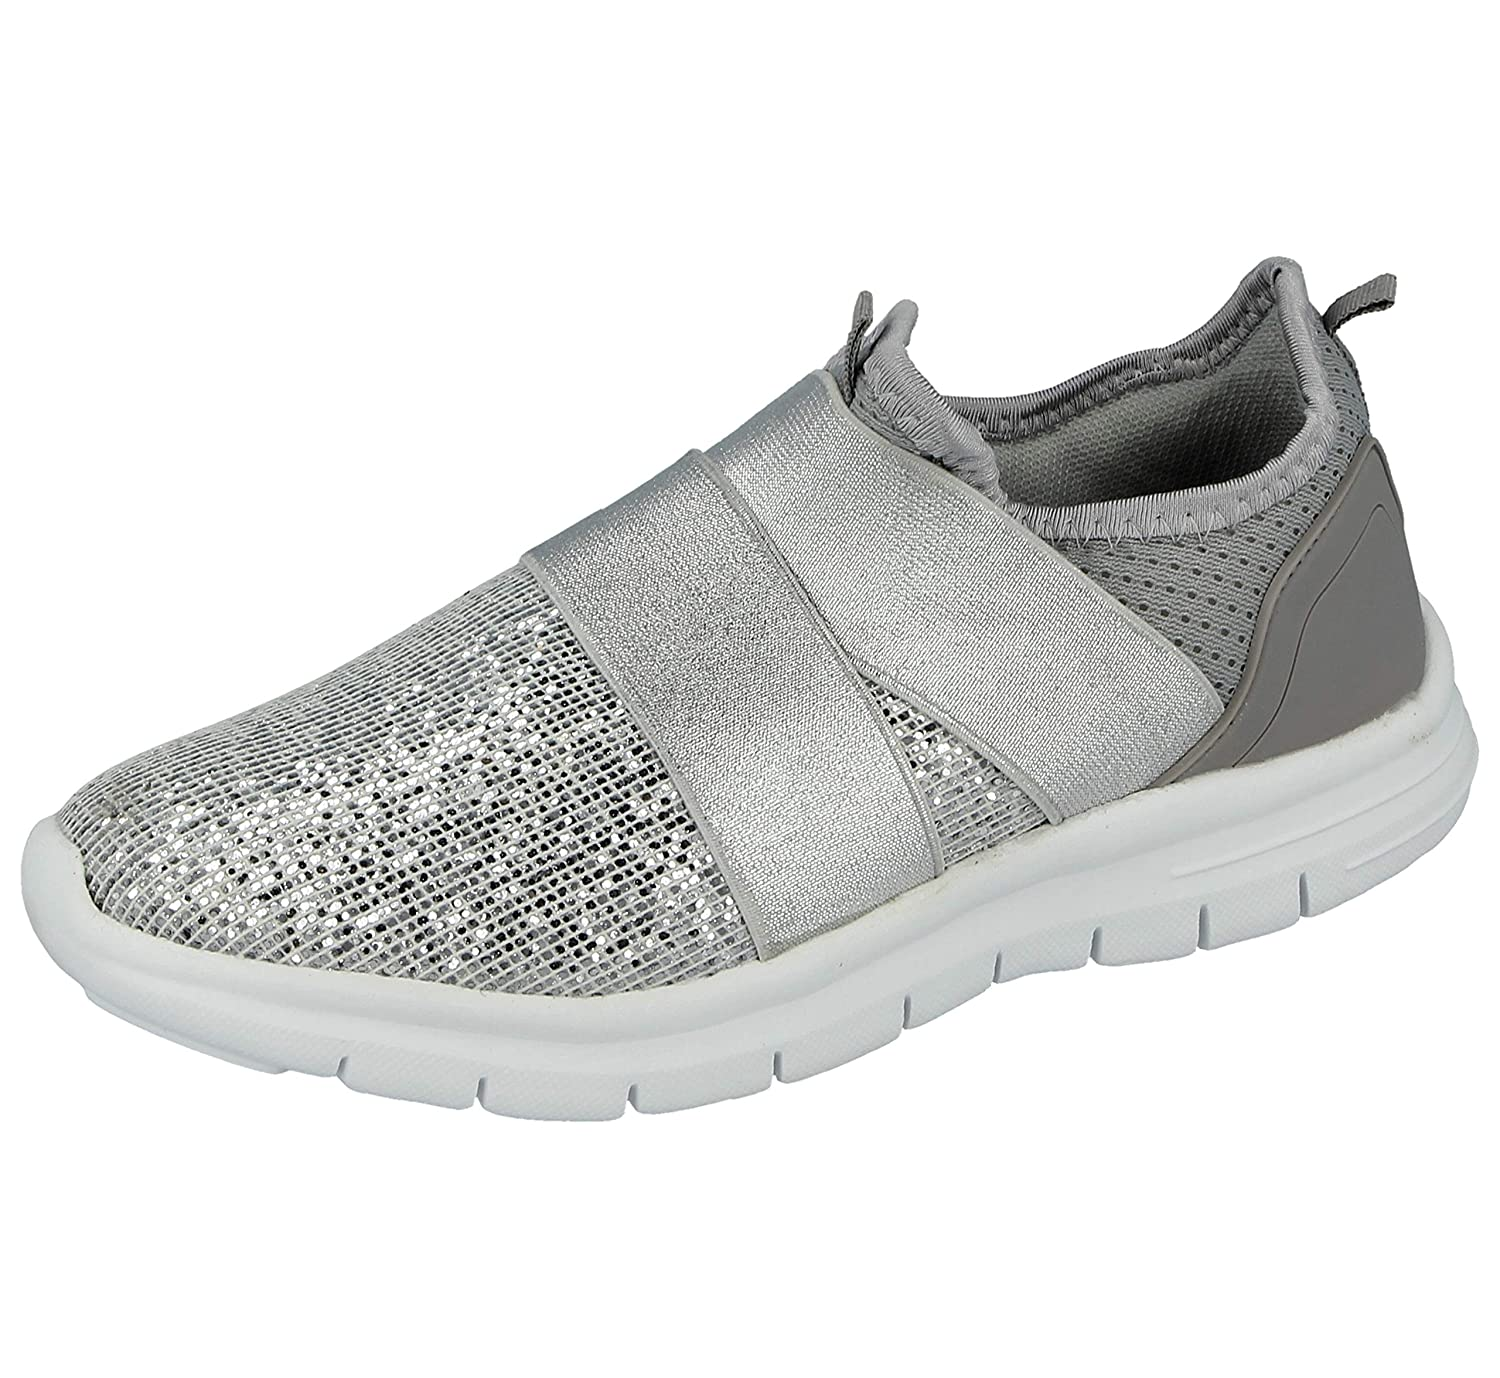 c4d47b4a800 Ladies Kids Girls Glitter Or Mesh Cross Over Elastic Strap Slip On Fashion  Trainers Go Shoes Size 10-8